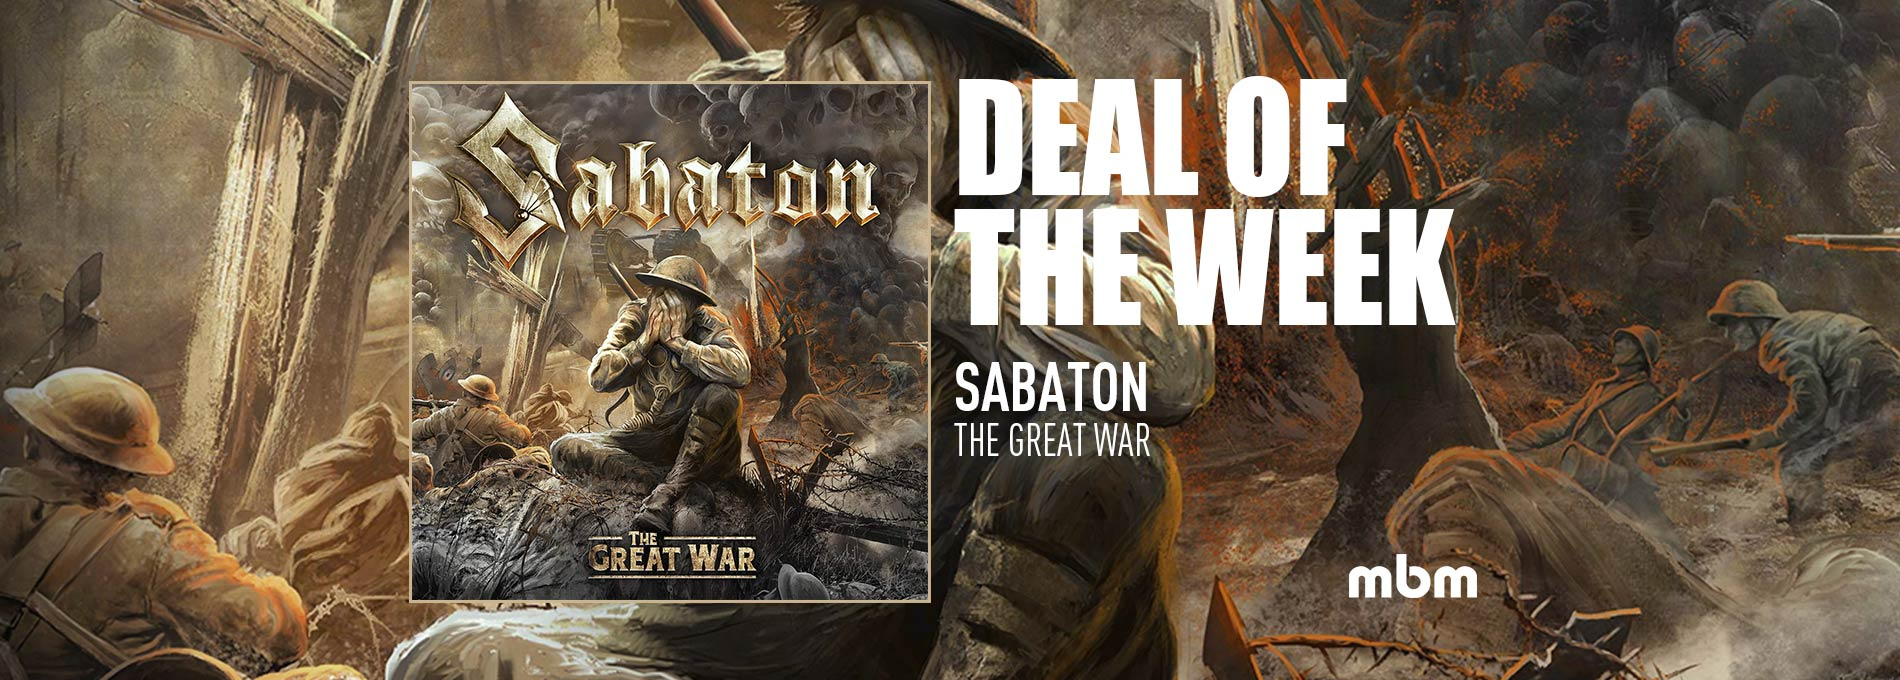 Deal Of The Week: SABATON - The Great War